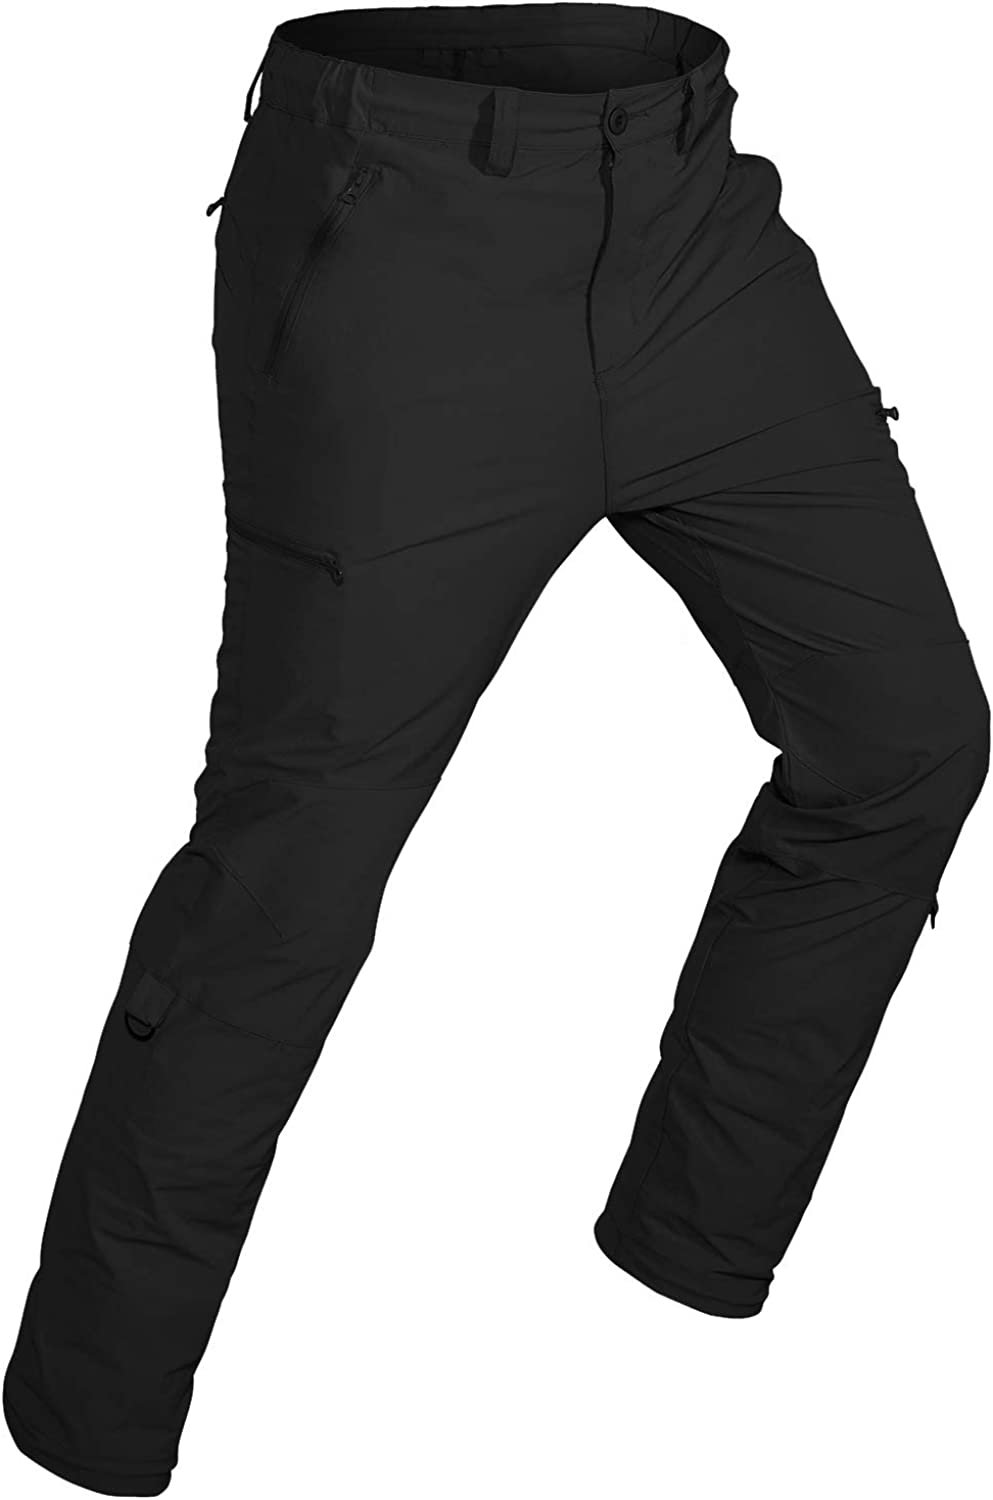 Wespornow Men's-Hiking-Pants Quick Dry Lightweight Stretchy Outdoor Camping Travel Roll-up Pants with 5 Zipper Pockets